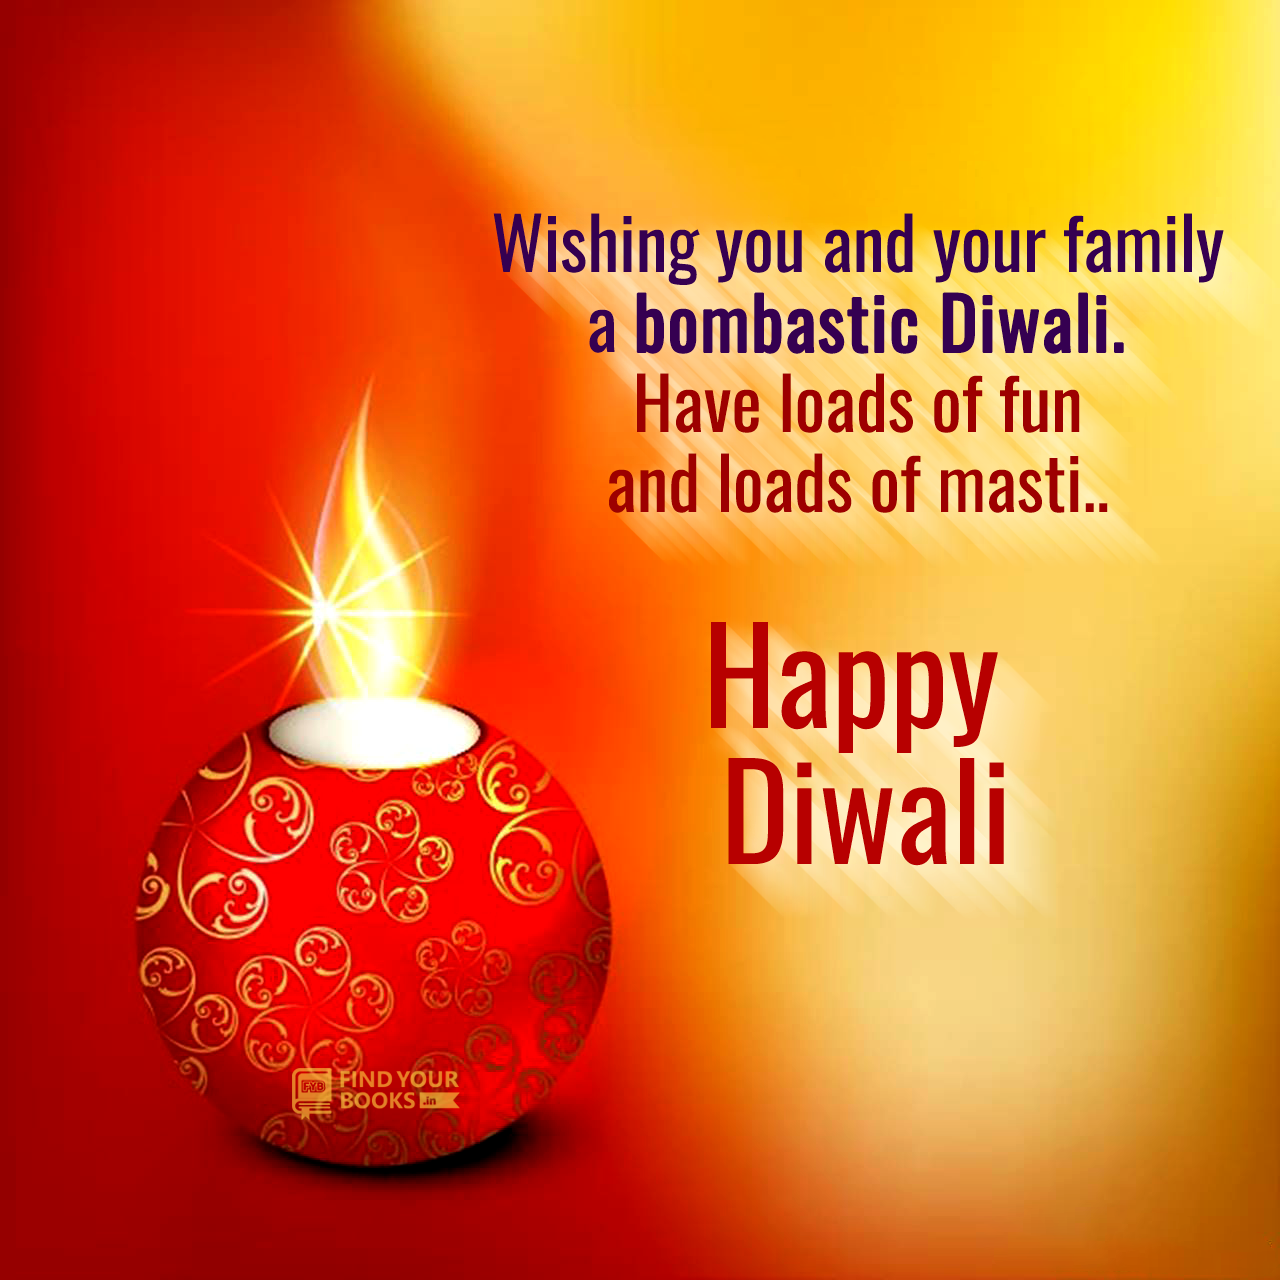 Beautiful Diwali Messages Wishes Greetings Wallpapers Diwali 2018